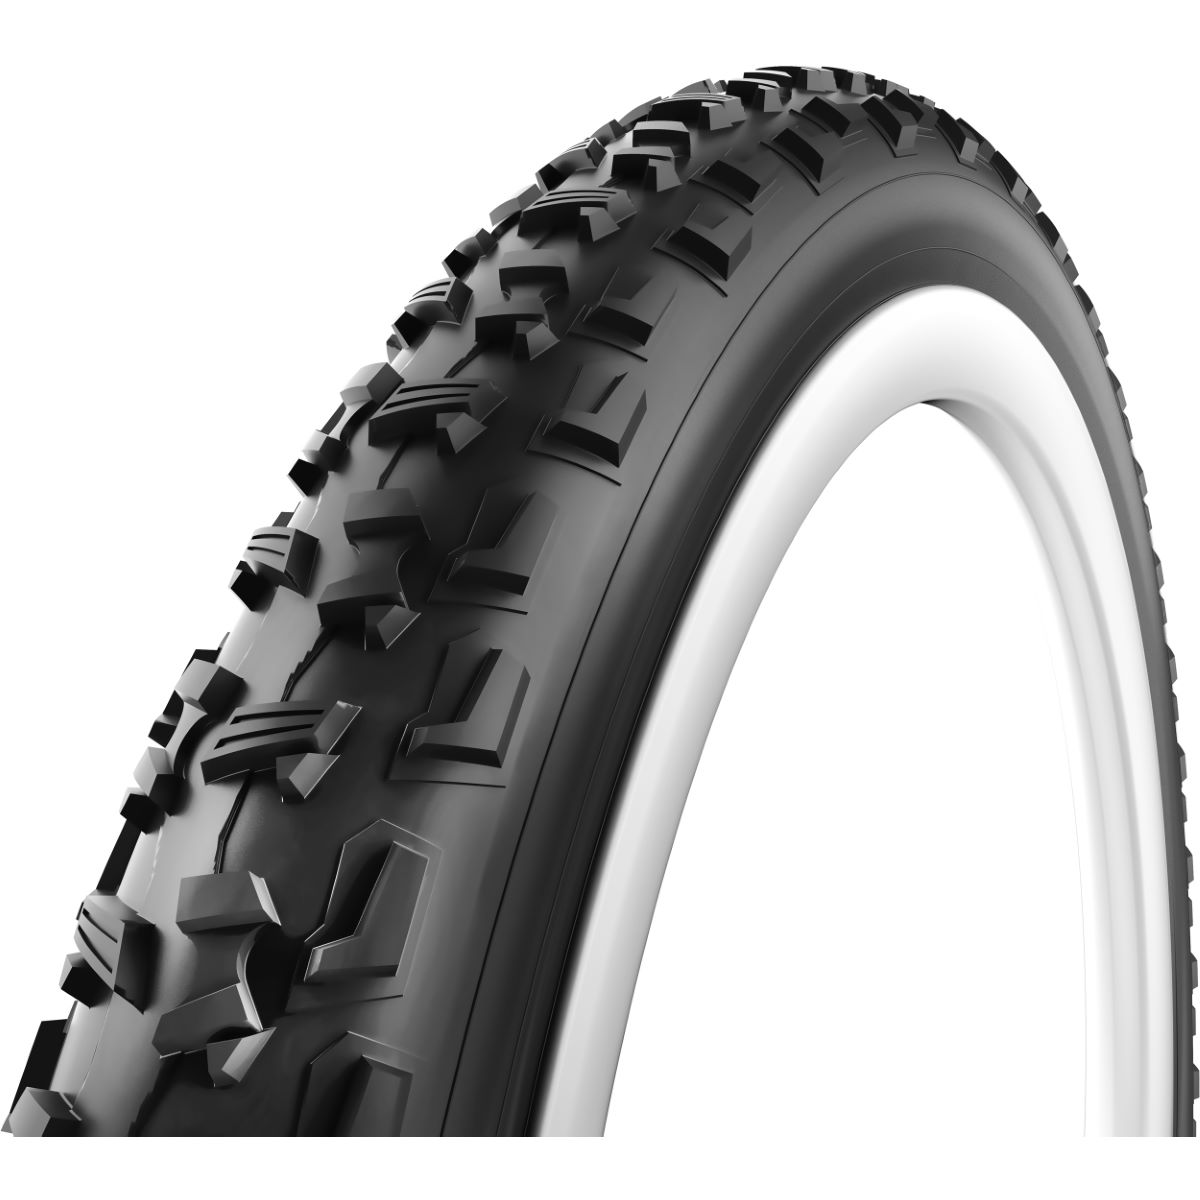 Bike Road Tyres Tyre Mtb Off-road Tyres